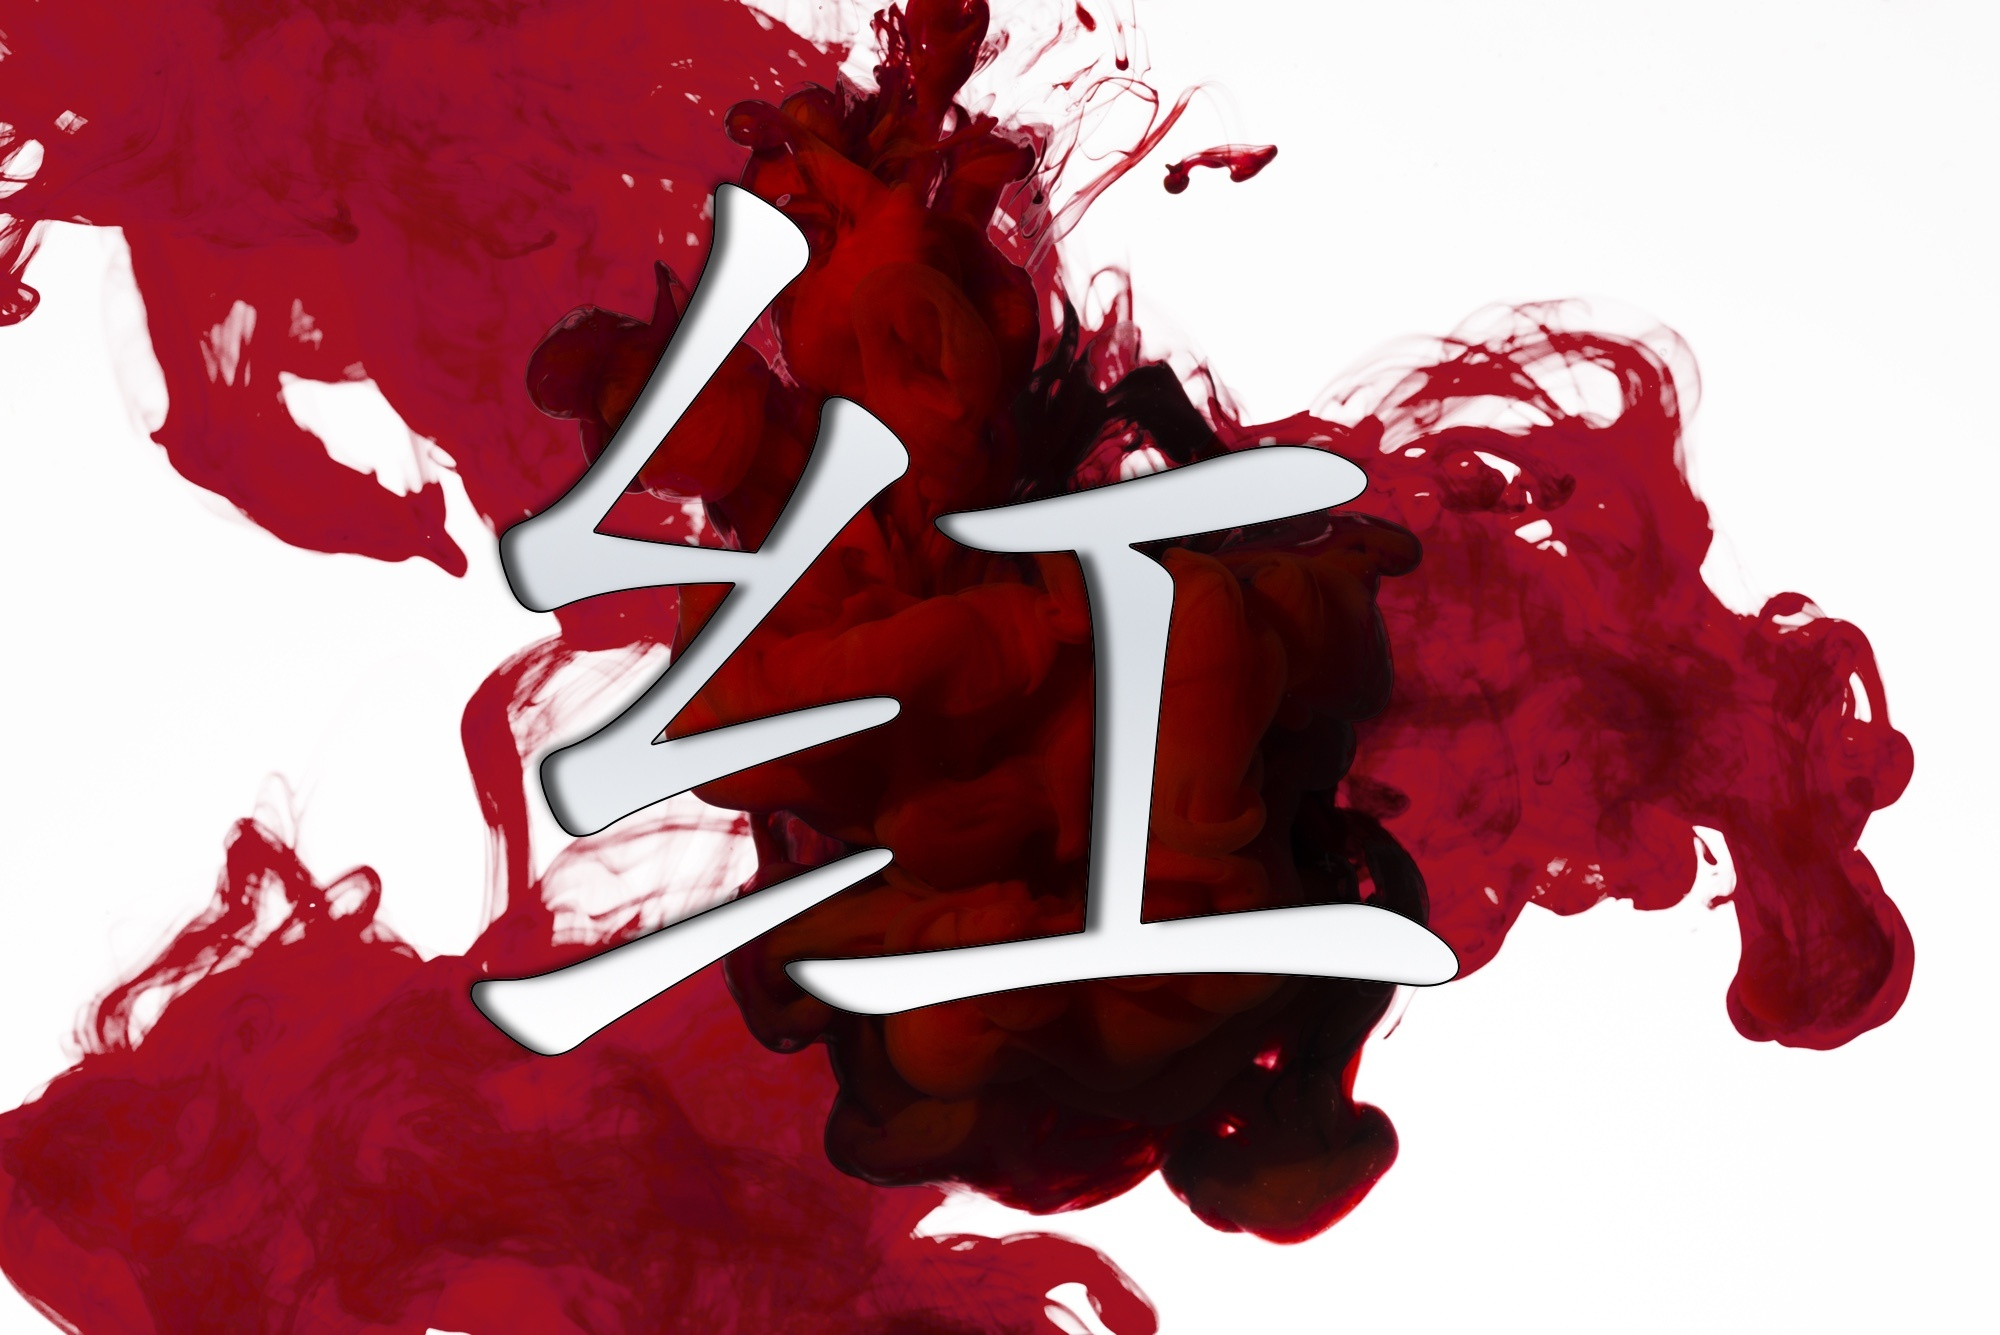 15 FACTS YOU MAY NOT KNOW ABOUT RED IN CHINESE CULTURE